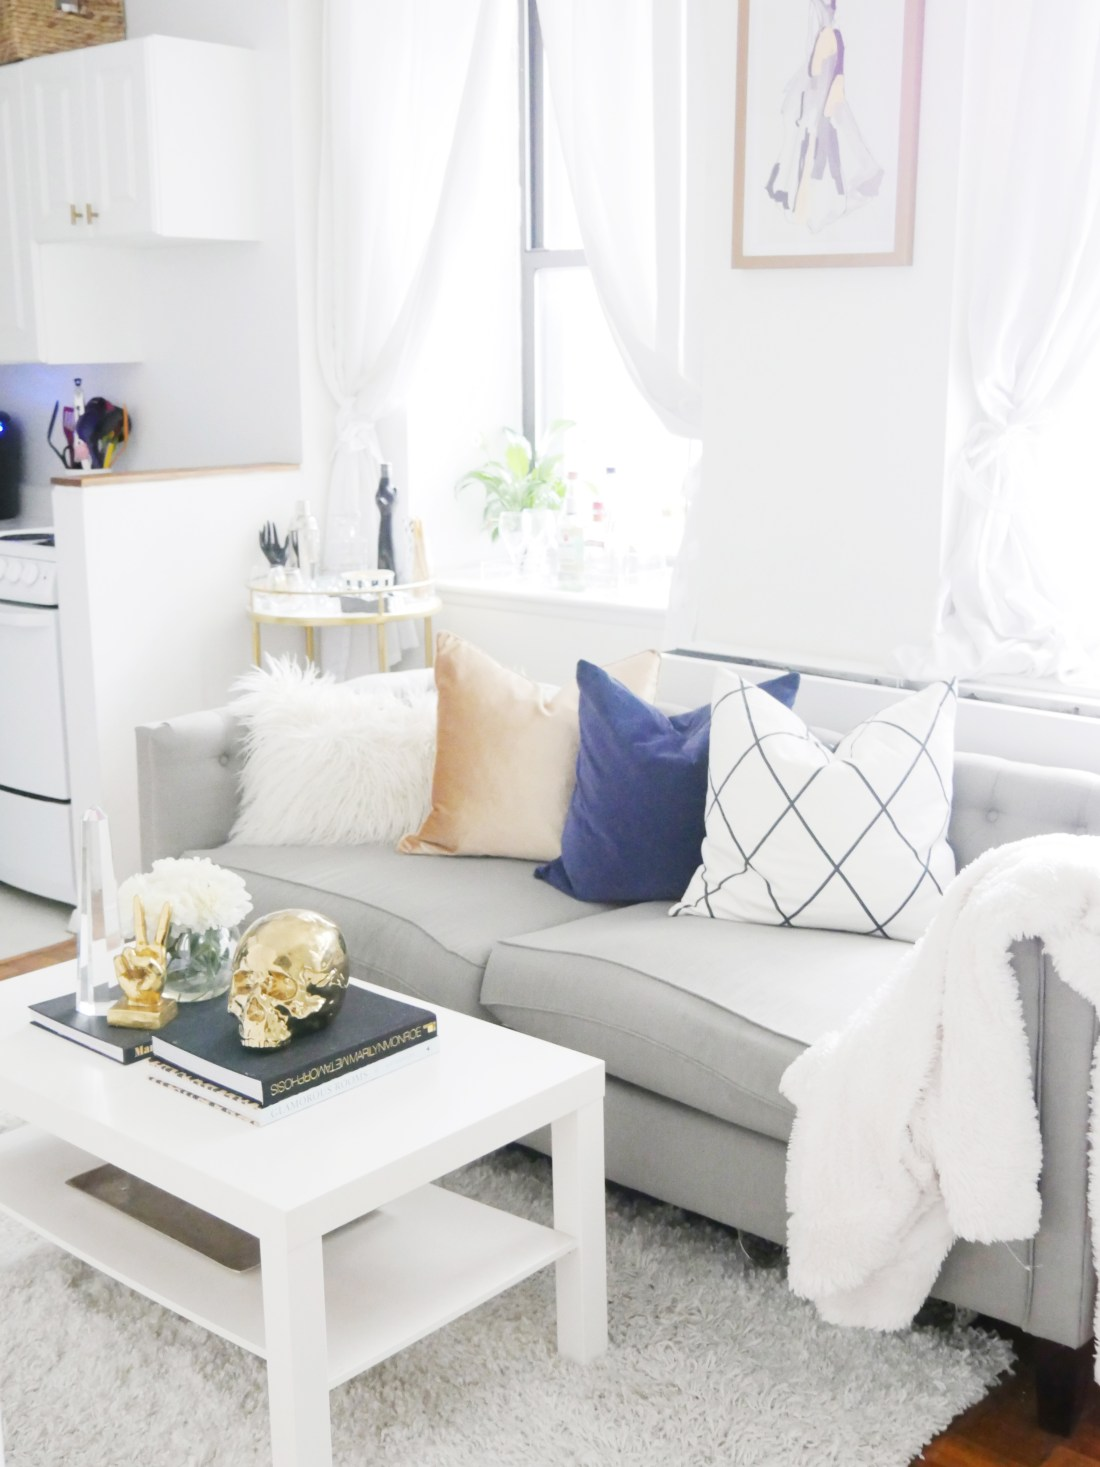 Its Important To Add A Certain Amount Of Color Your Home Even If Is Mostly Neutral Toned My Apartment Many People Feel Hesitant Adding